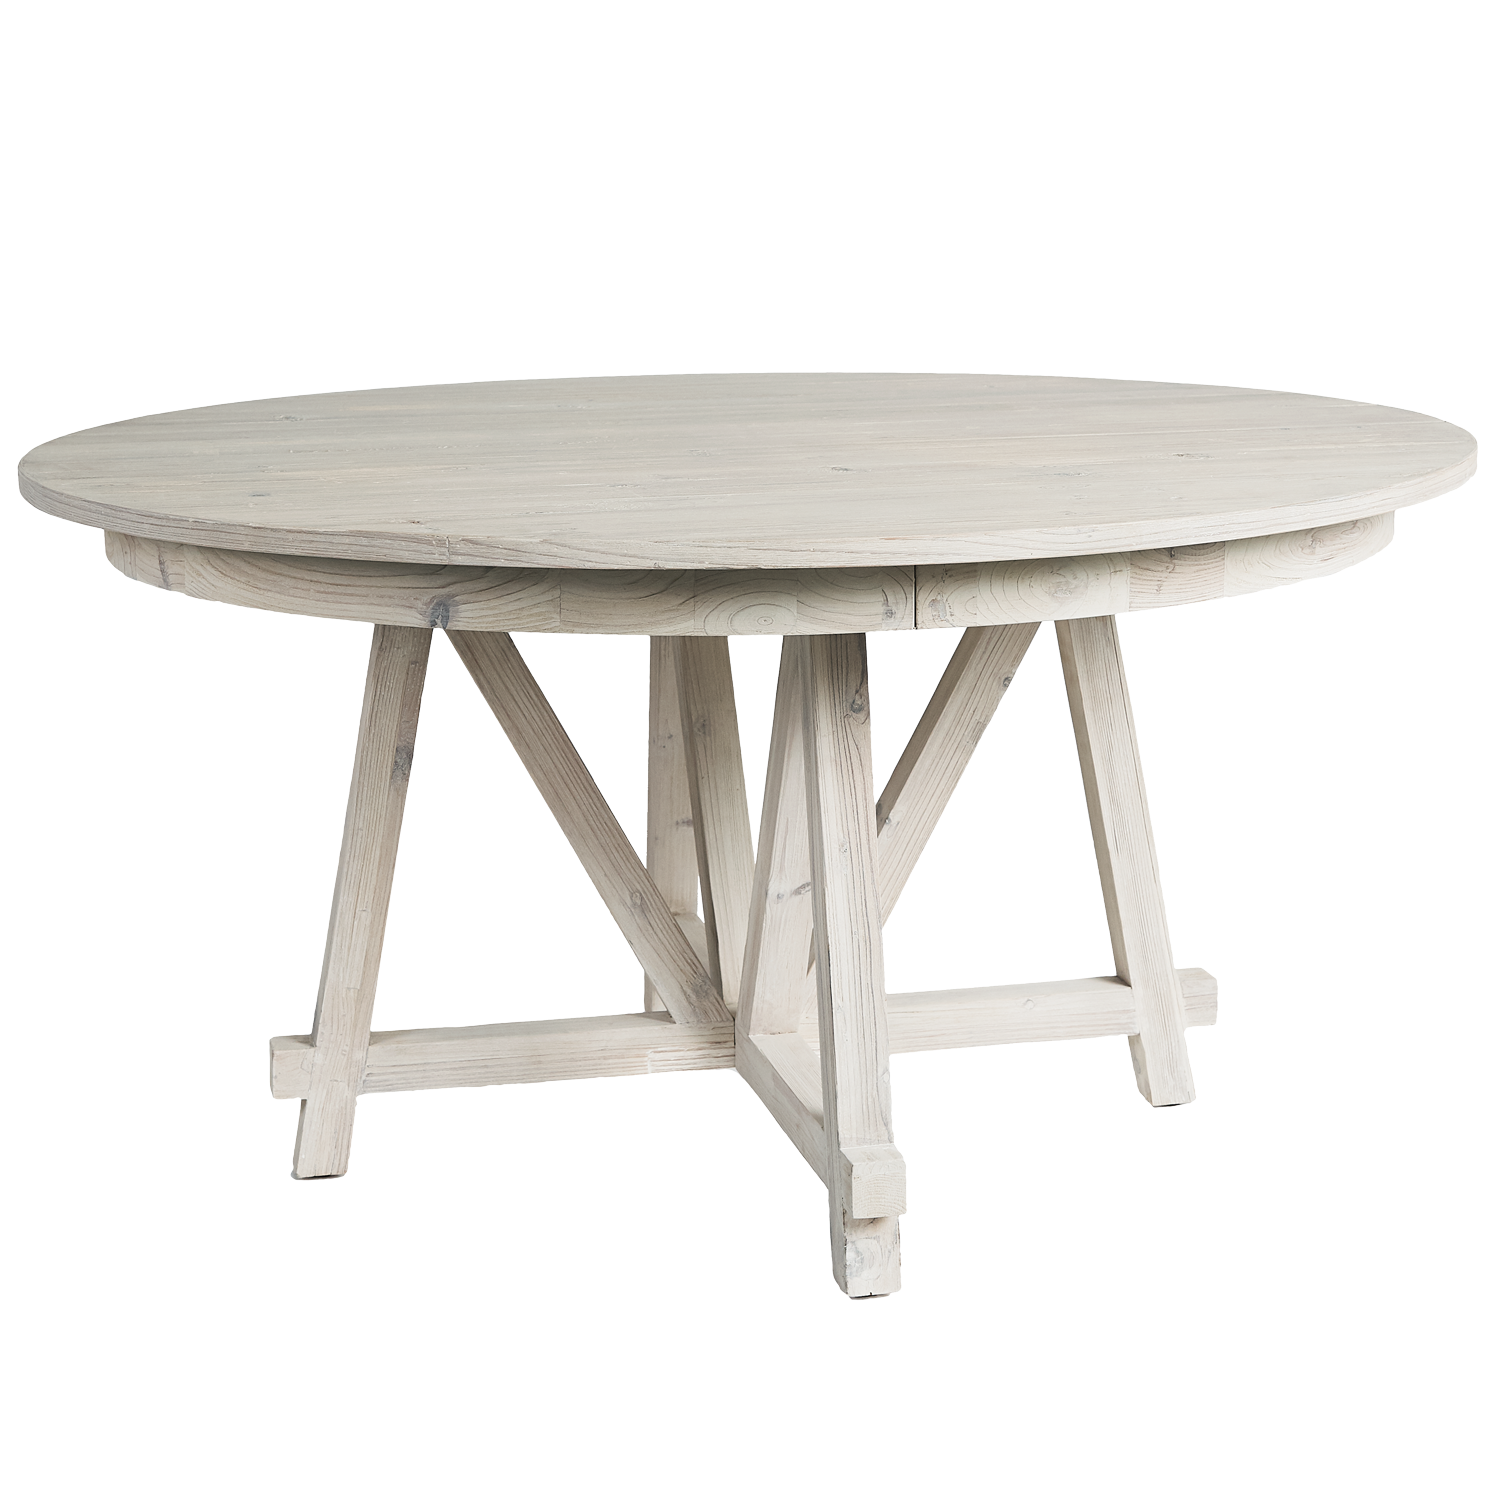 SH Nook Round Dining Table